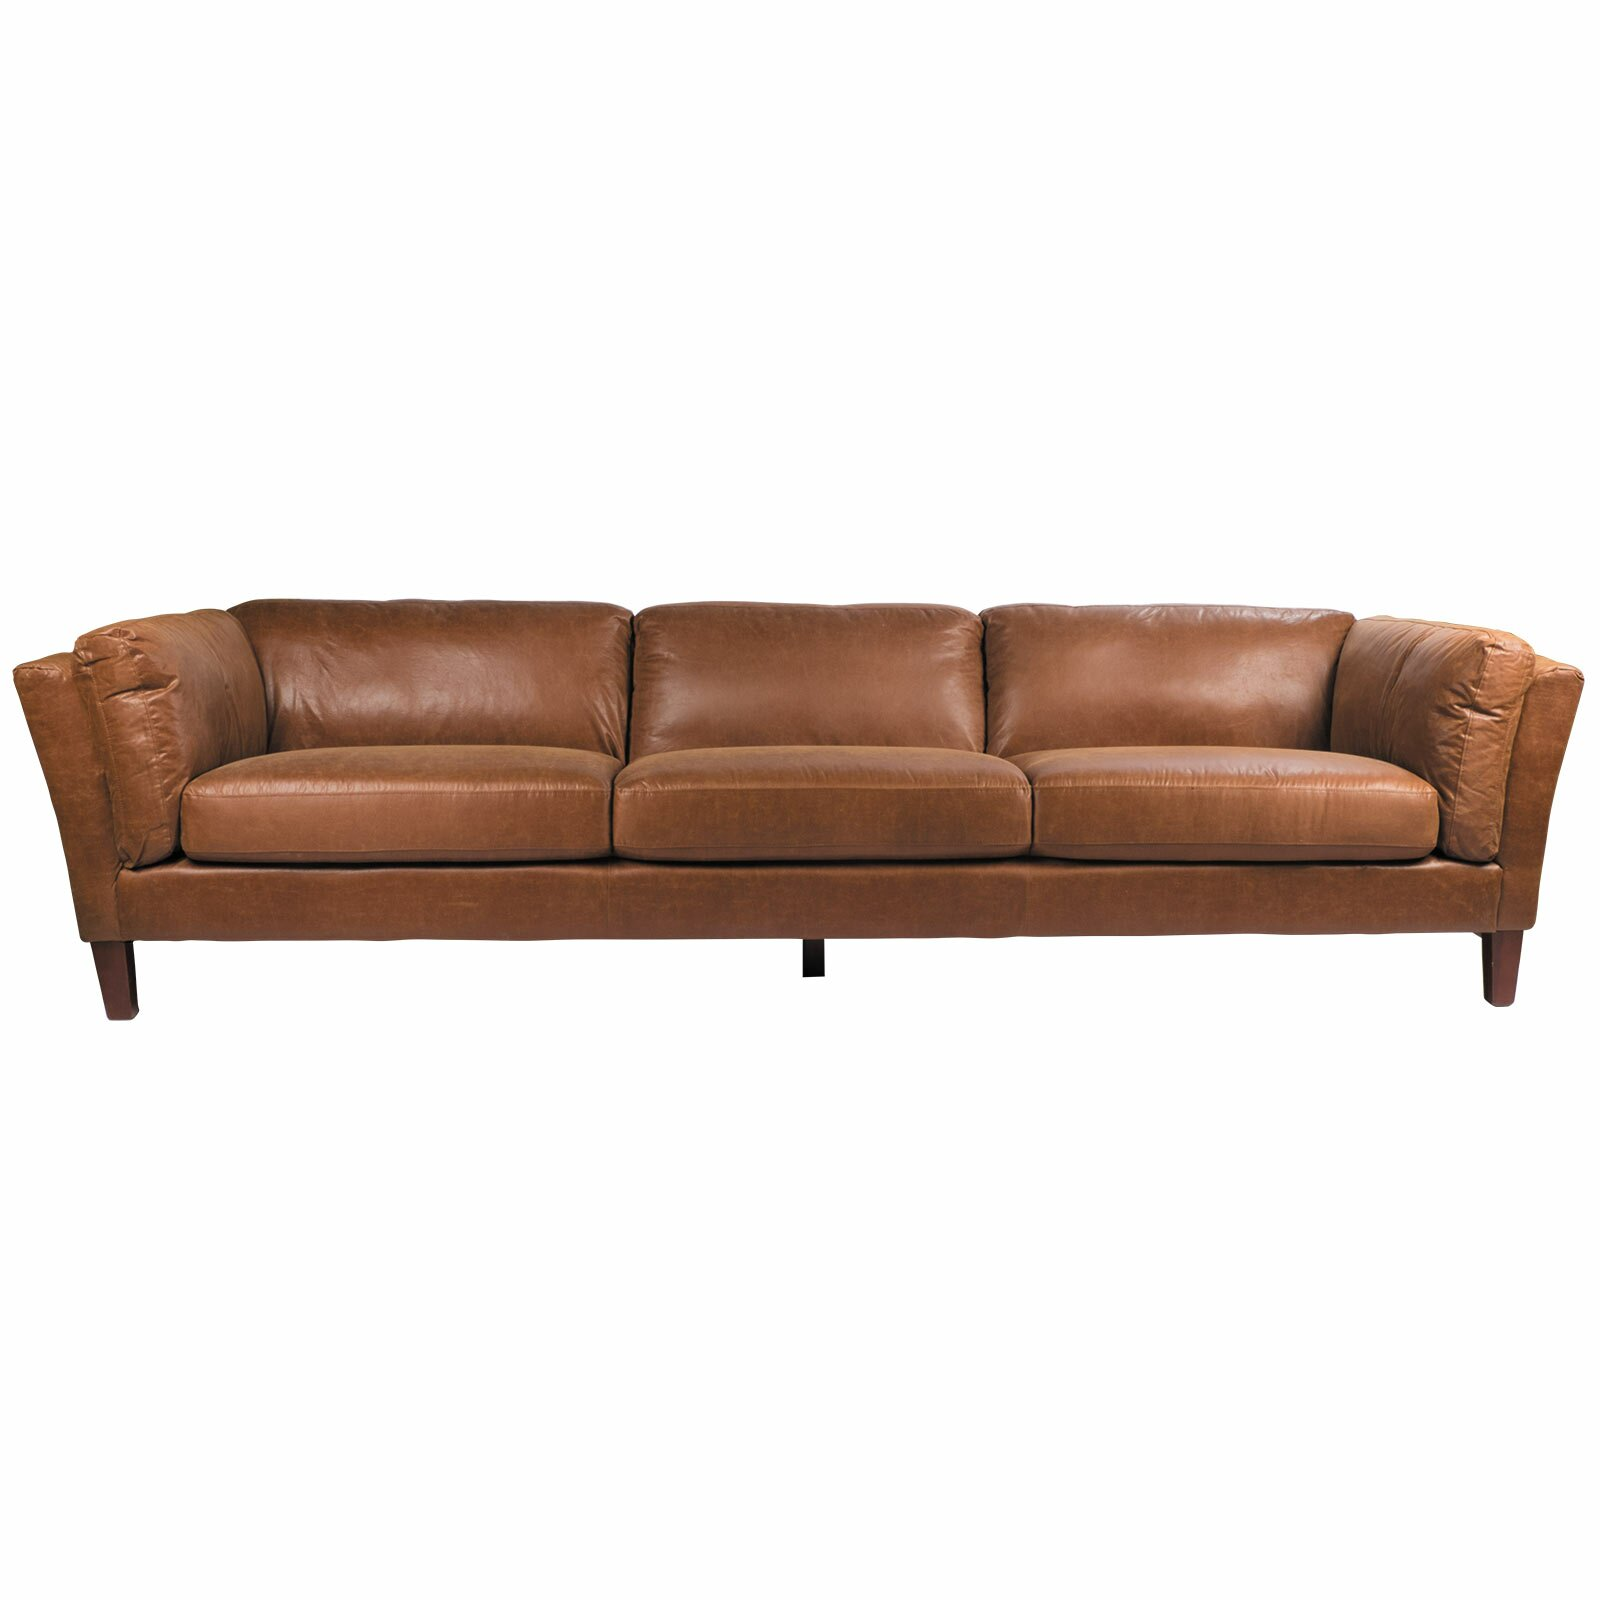 Joseph Allen Alamo Leather Sofa